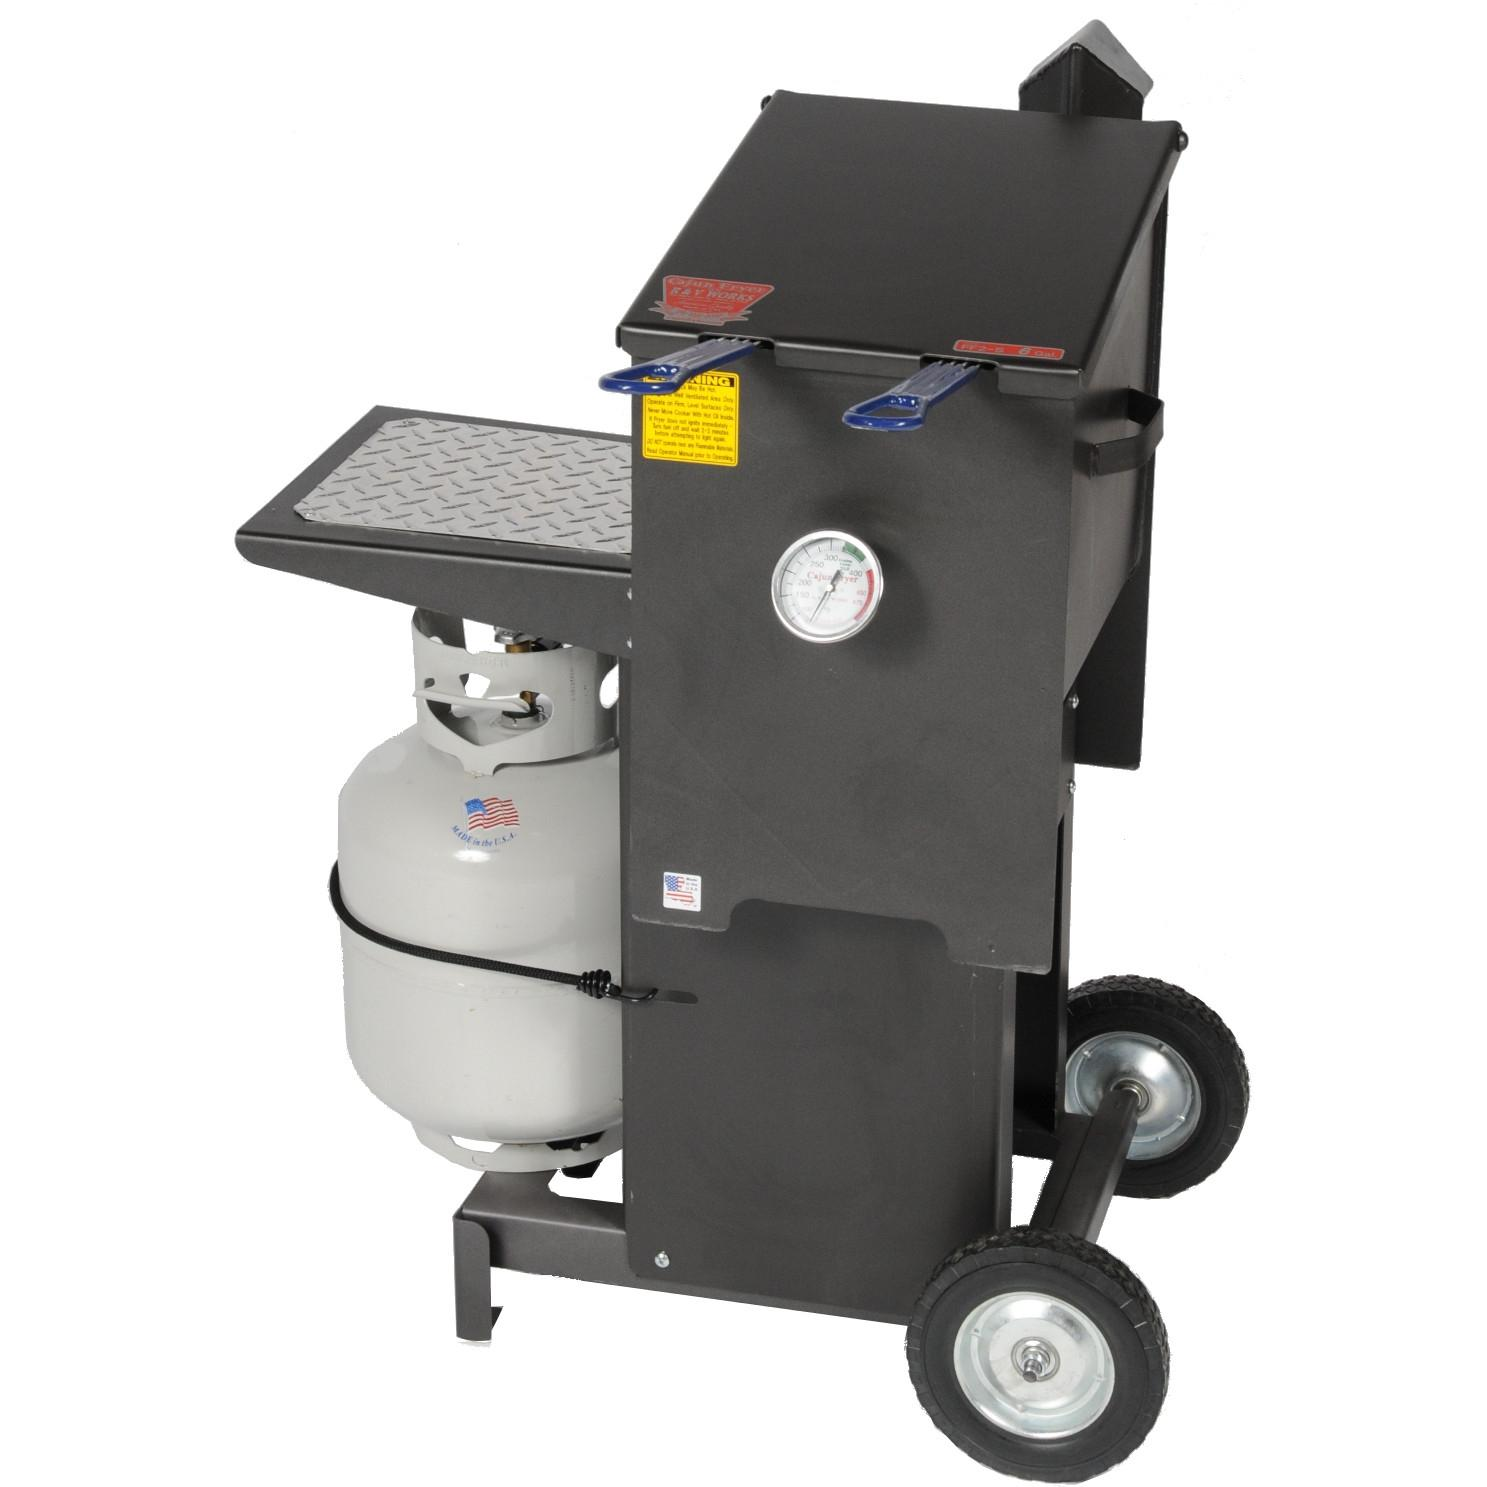 Cajun Fryer 6 Gallon Deep Fryer With Stand And 2 Baskets 2873222